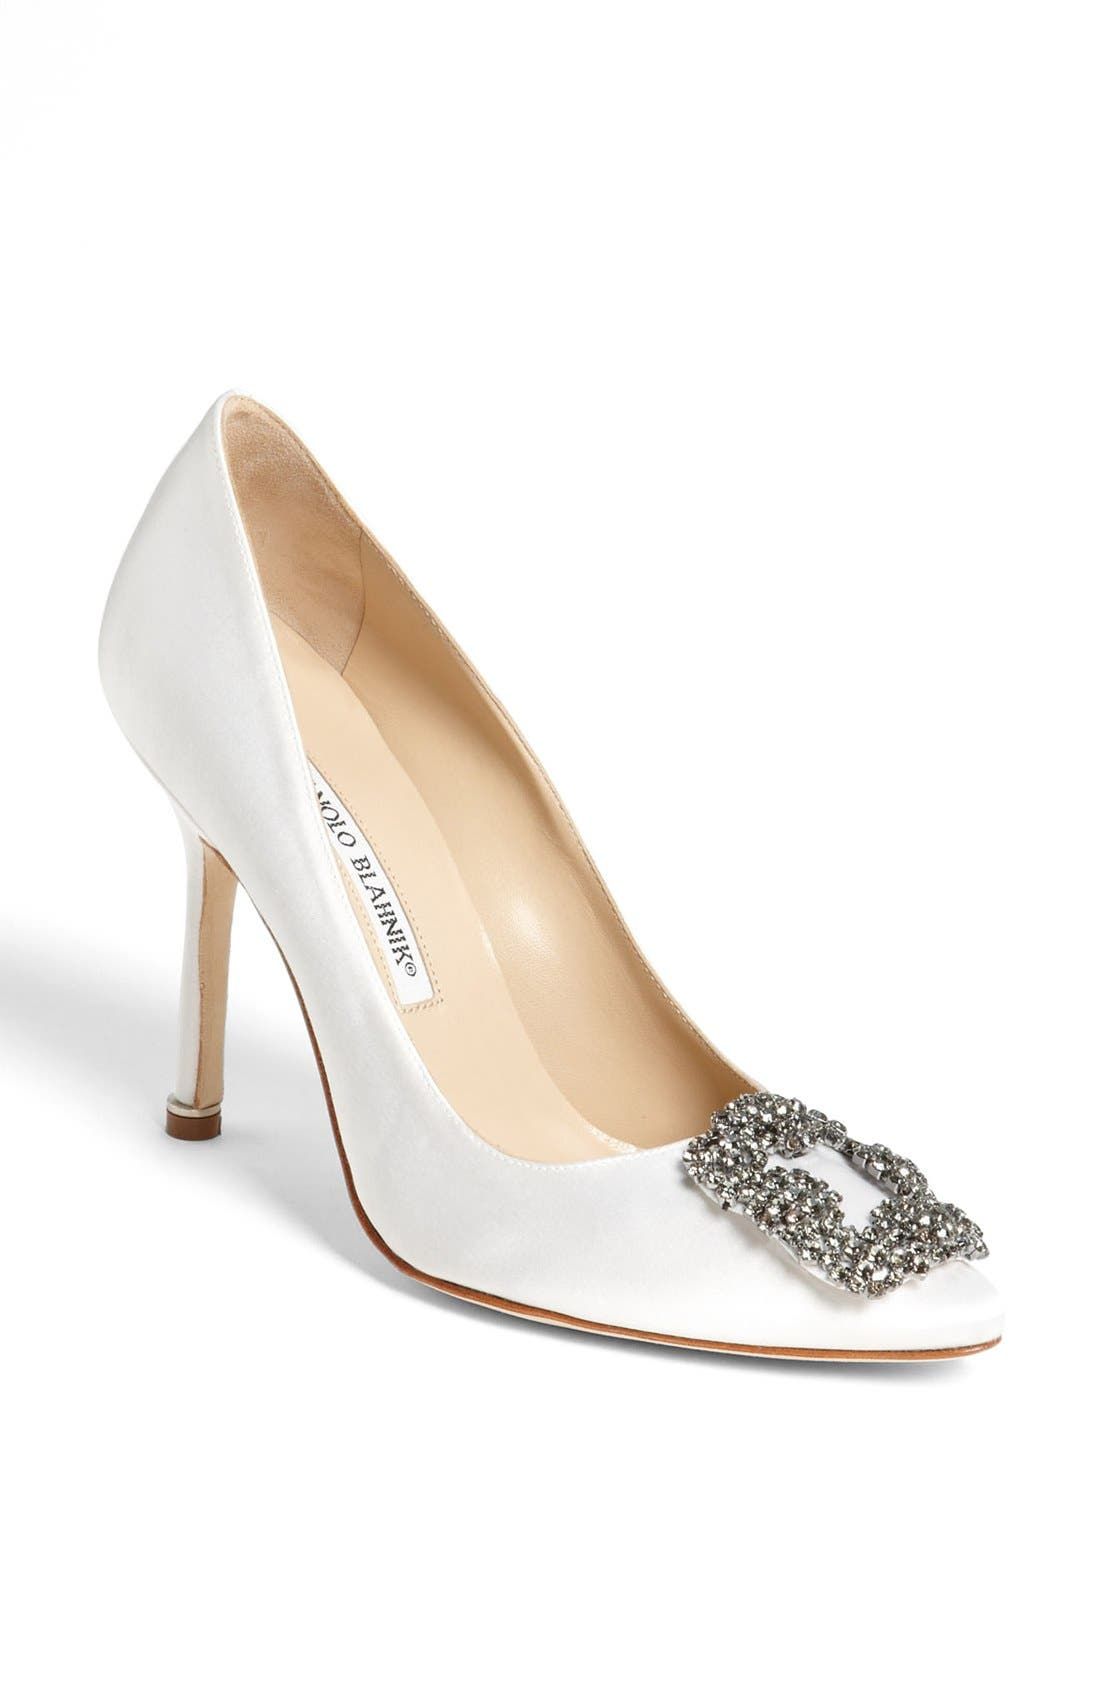 White Heels & High-Heel Shoes for Women | Nordstrom